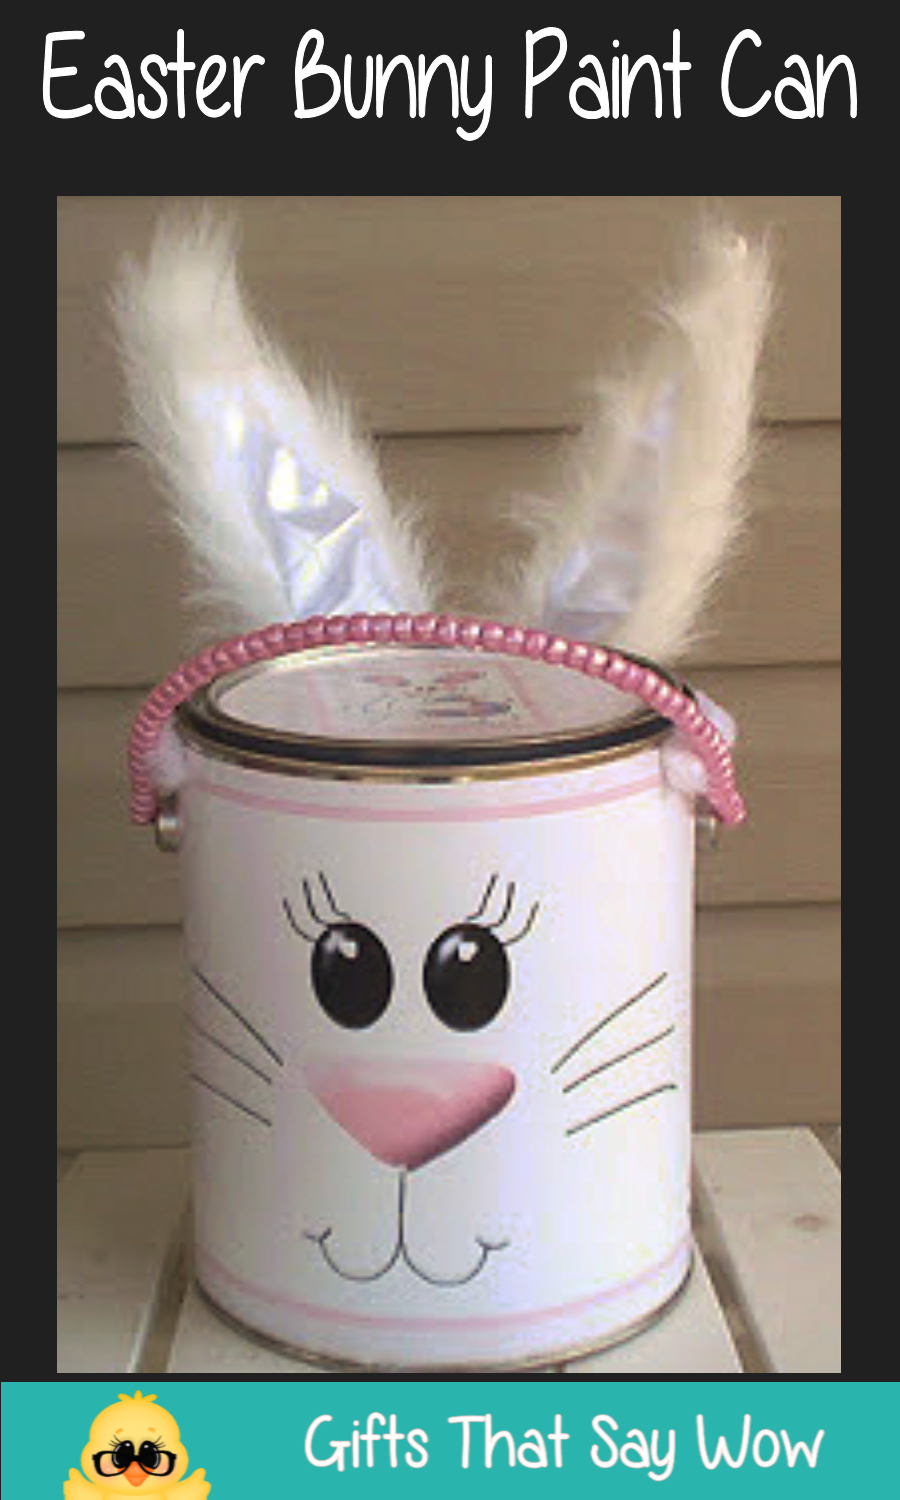 Gifts that say wow fun crafts and gift ideas easter bunny paint can want a unique easter basket for your little one this year why not make one from a paint can you can find templates for them on several websites negle